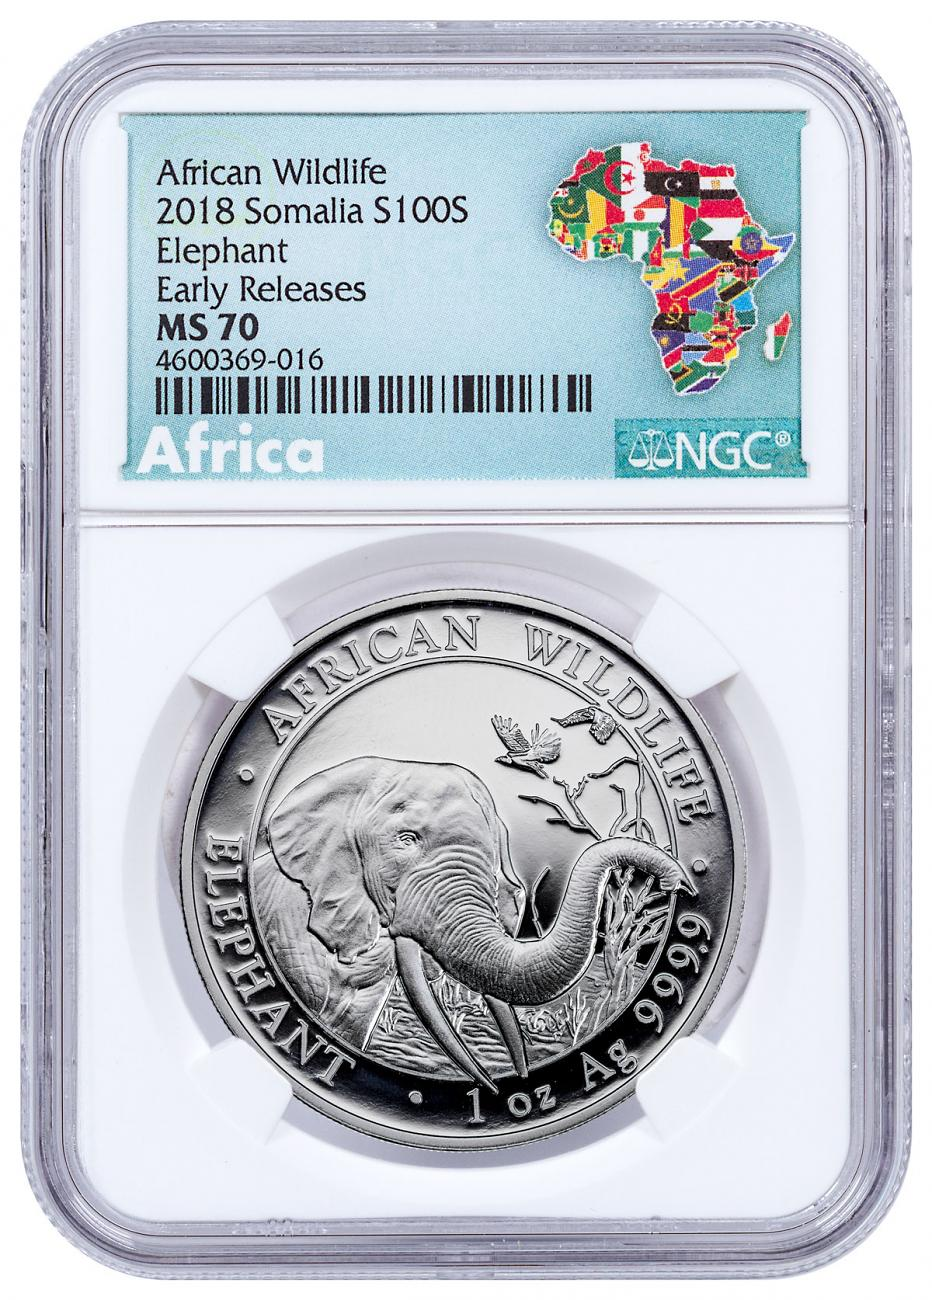 2018 Somalia 1 oz Silver Elephant Sh100 Coin NGC MS70 ER Exclusive Africa Label